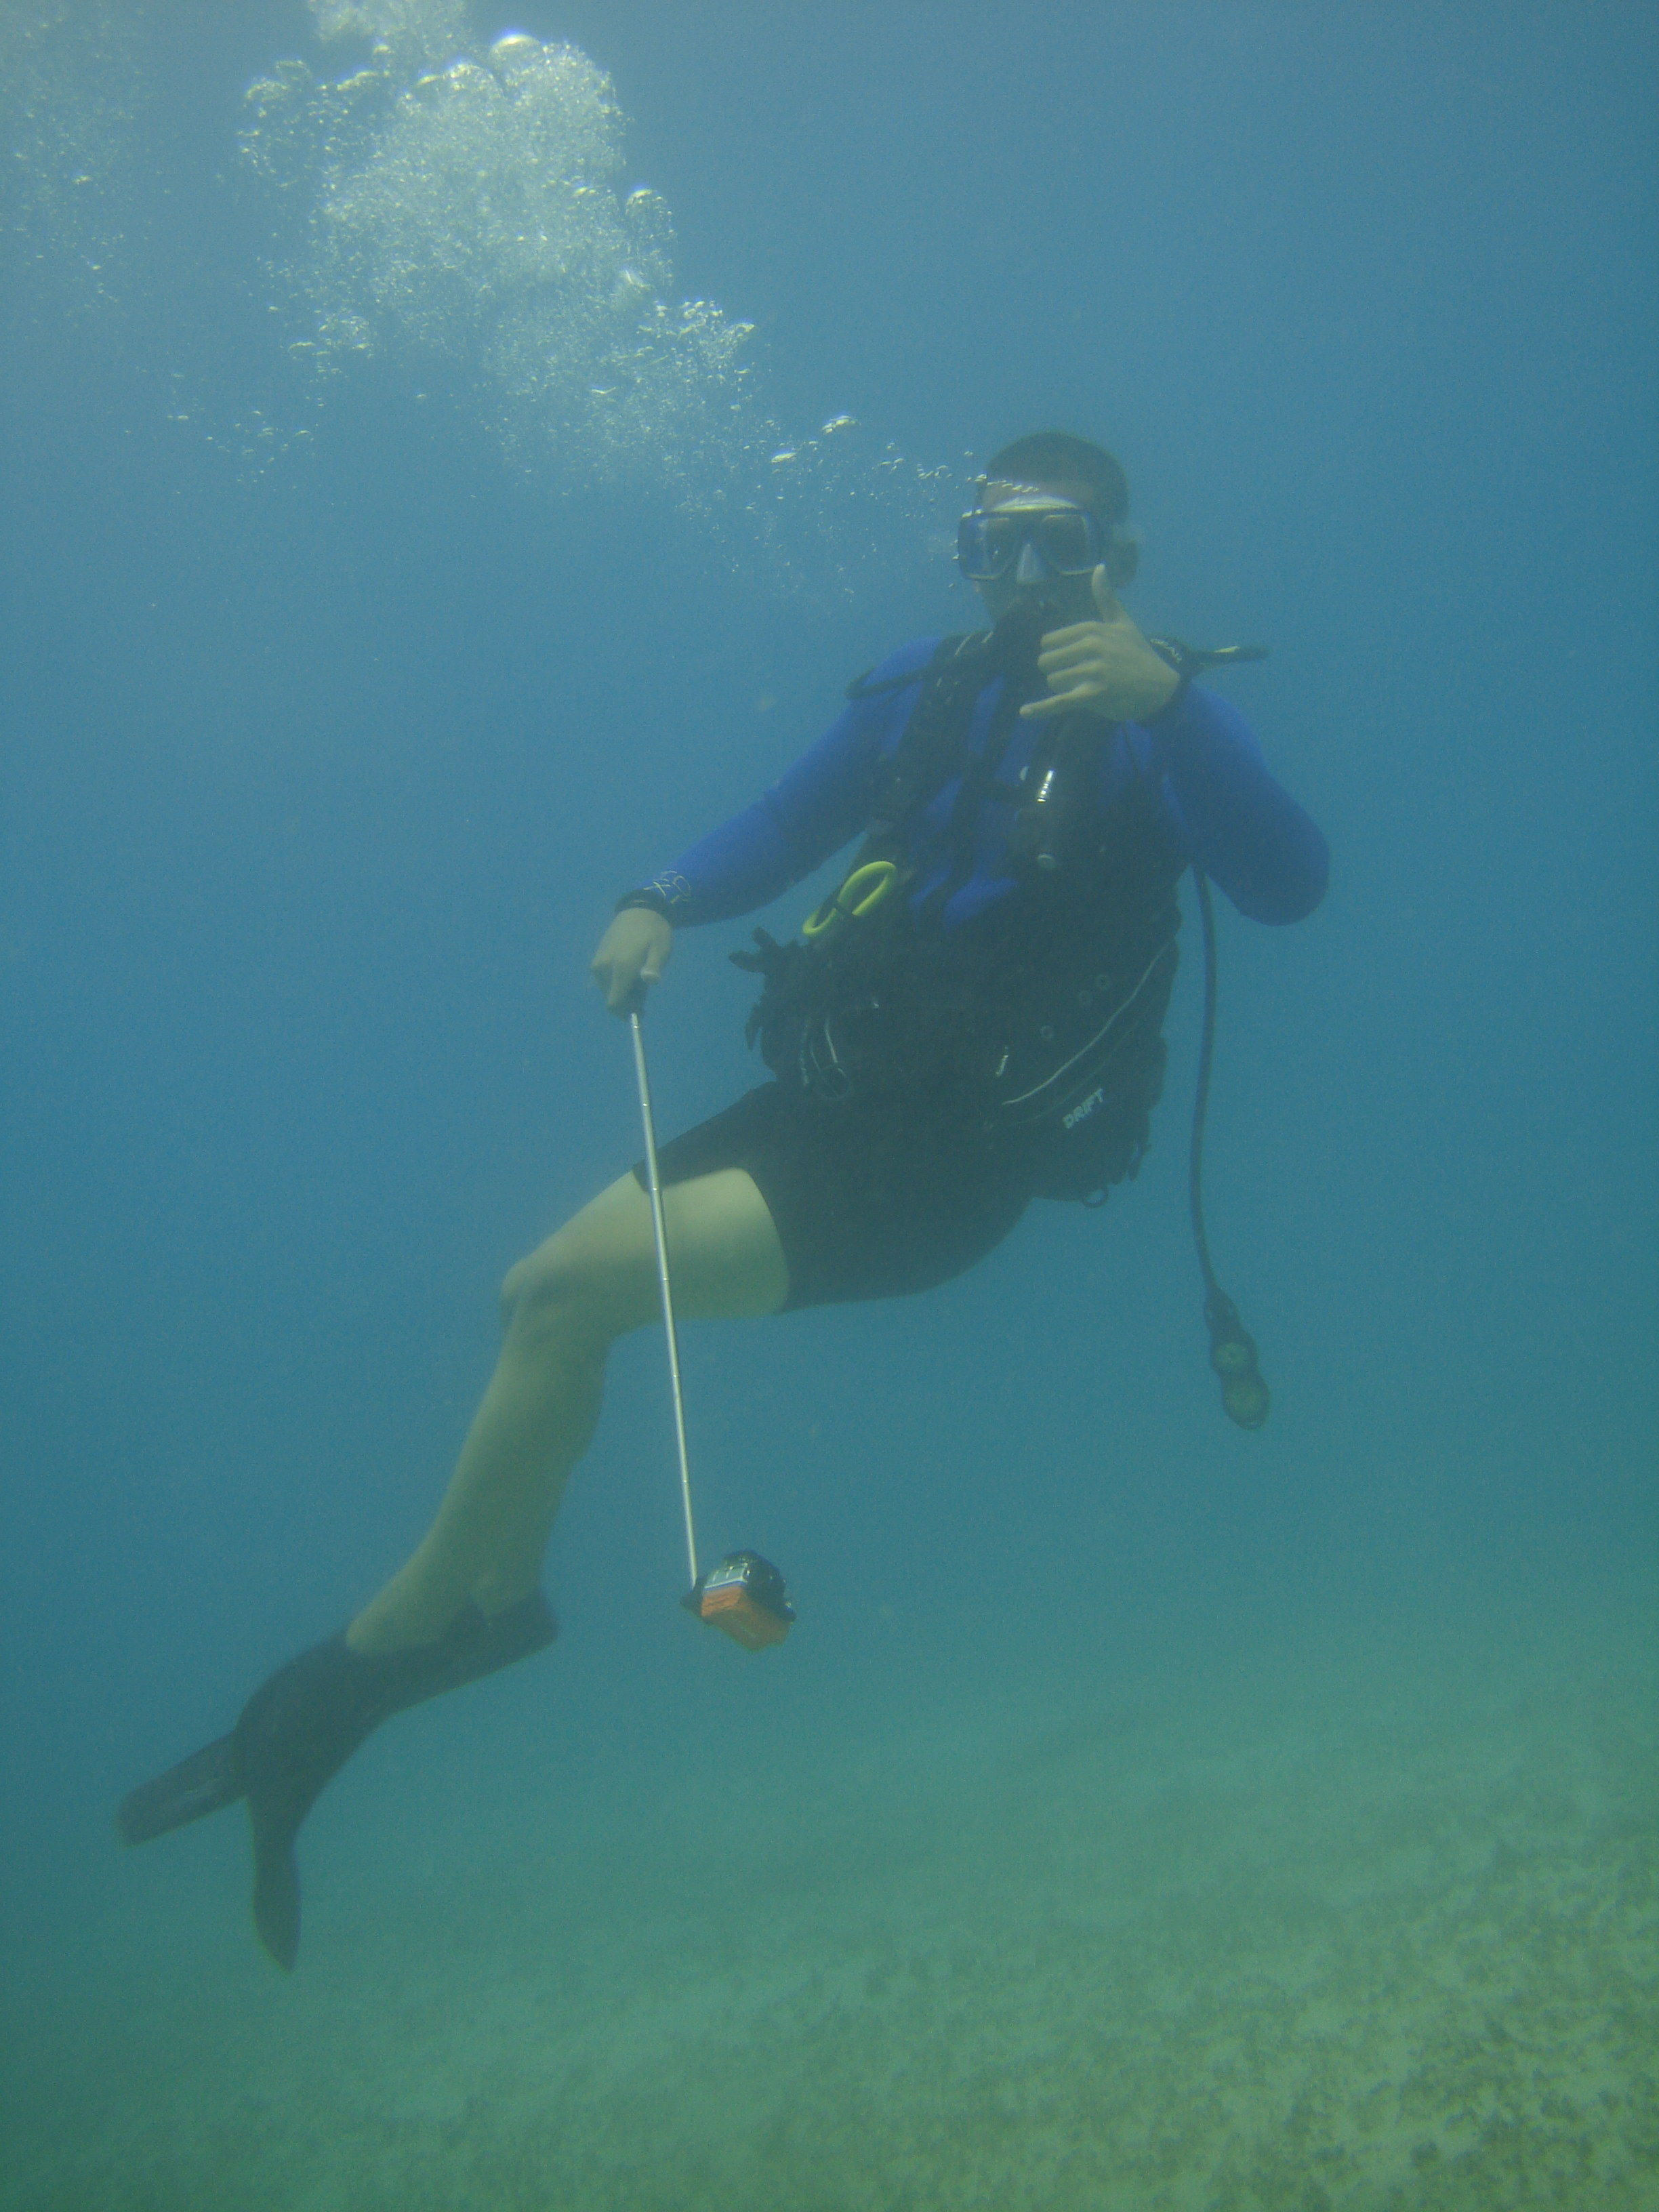 Mario showing some awesome style.Pretty good for a first time scuba diver!